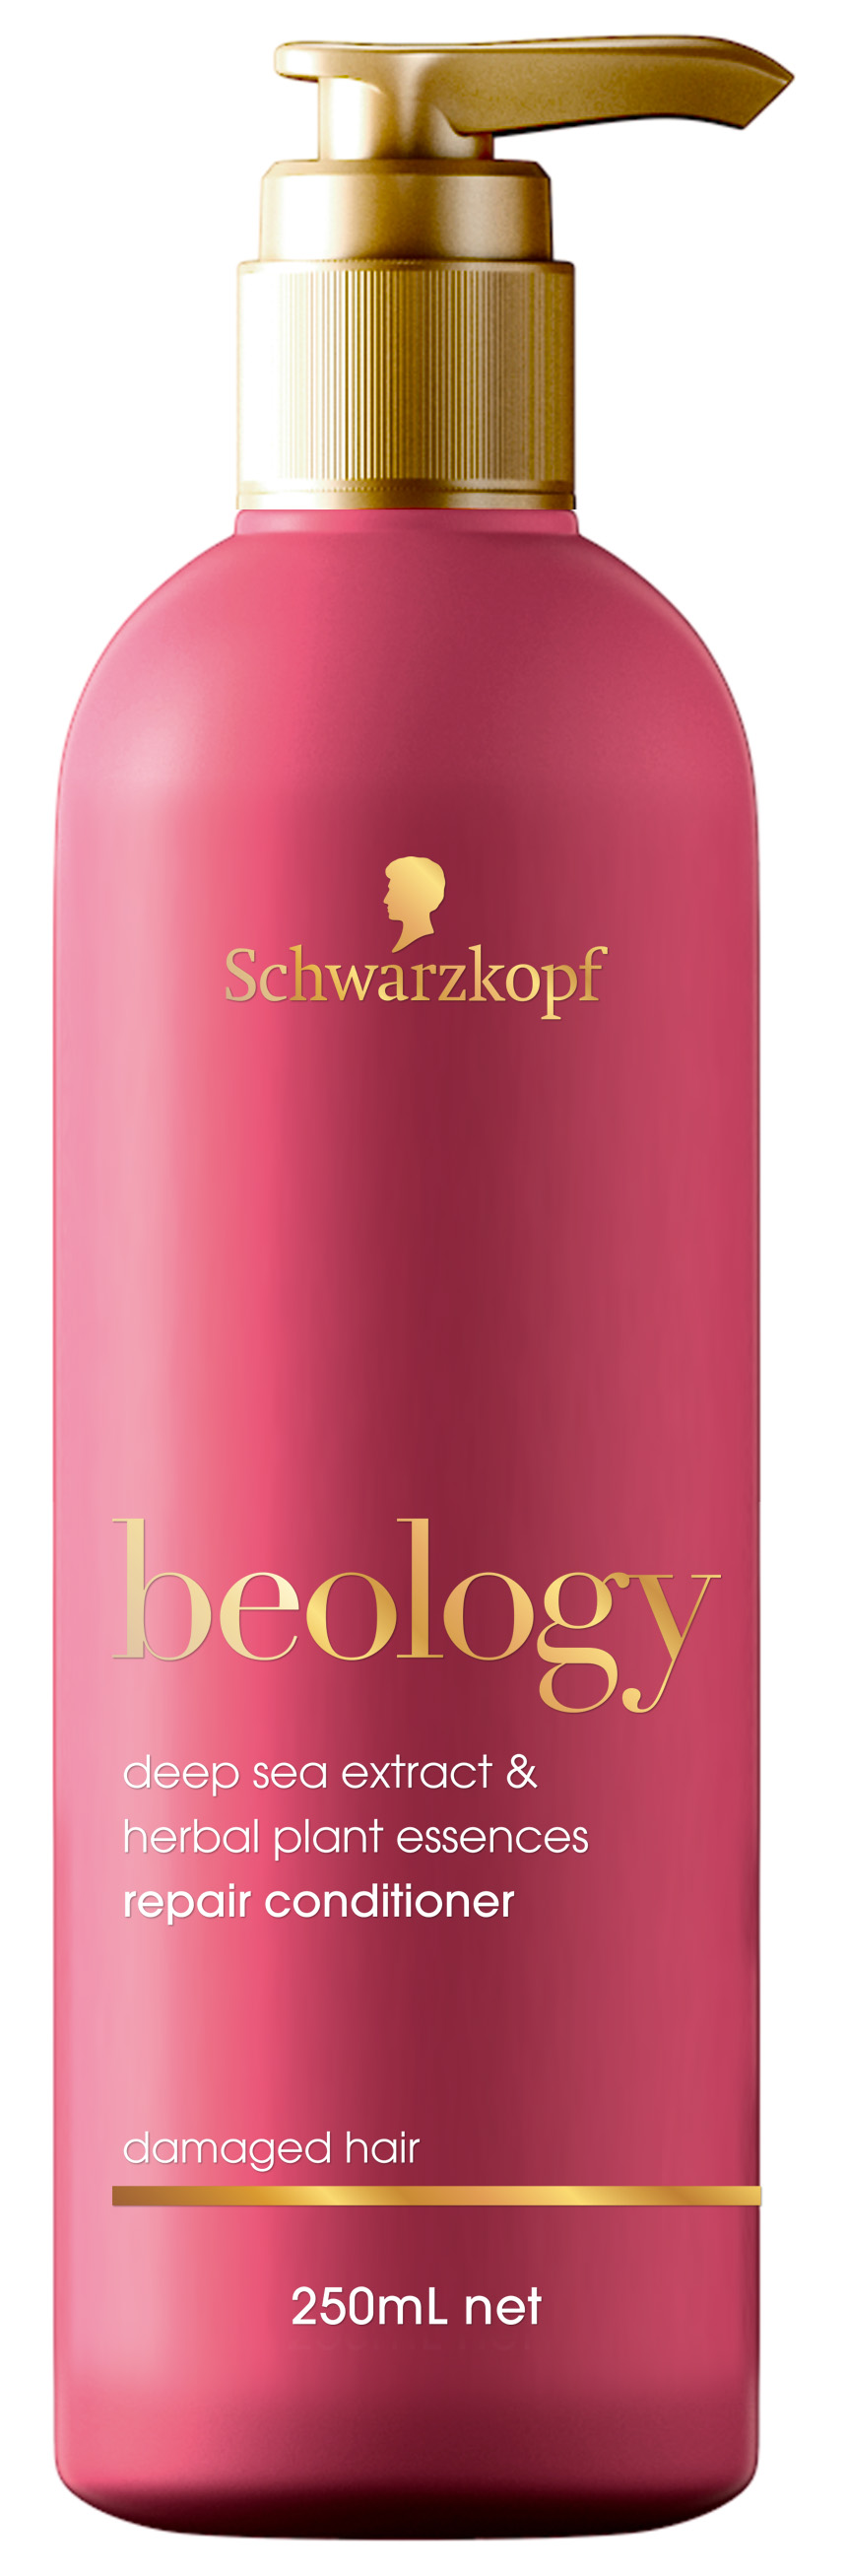 Beology_Repair_Conditioner_250ml copy